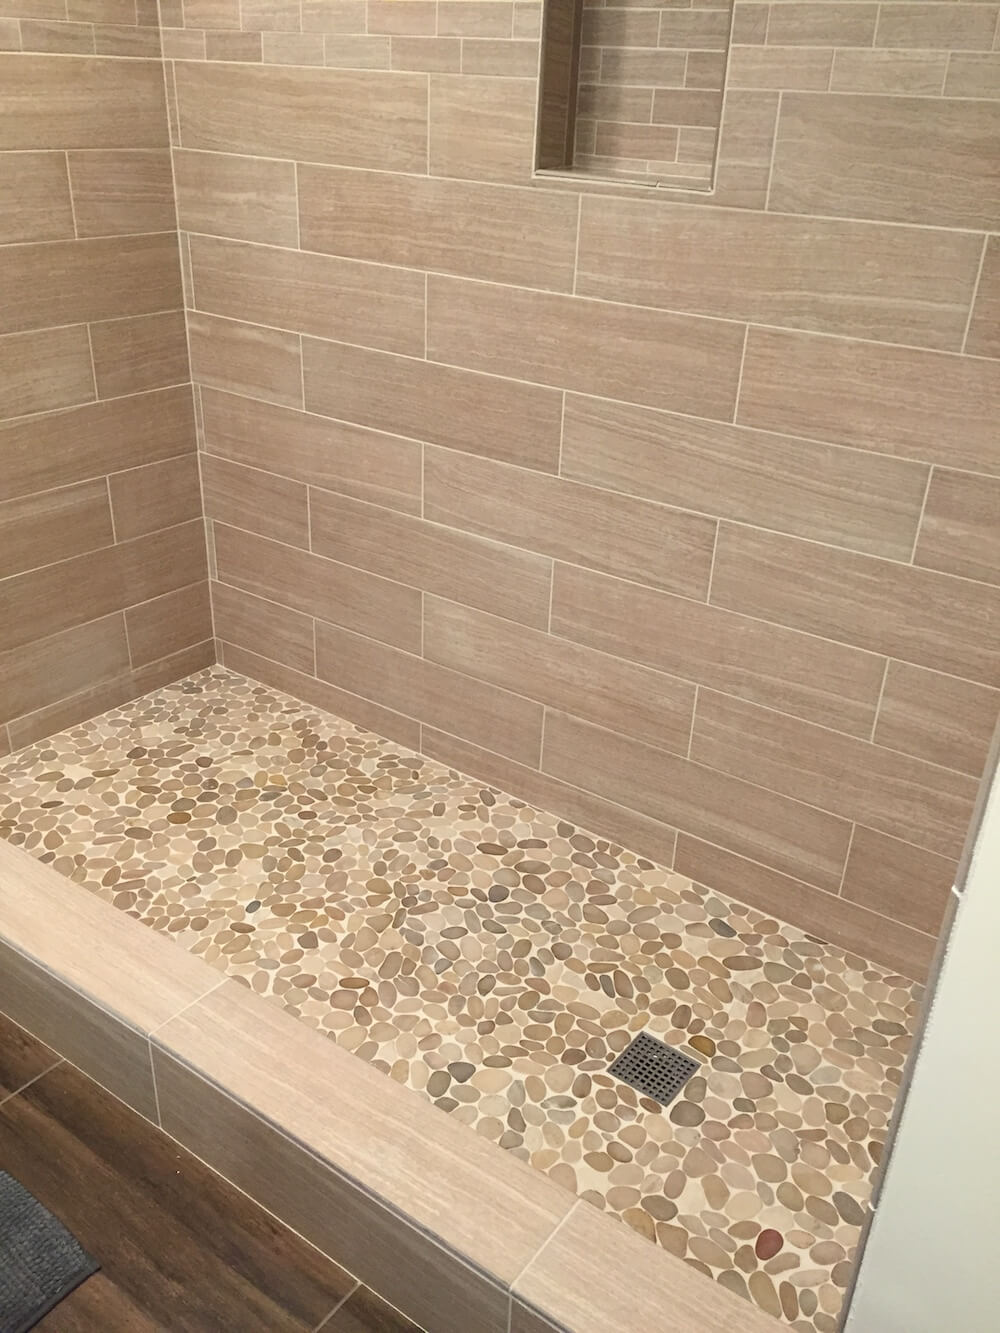 2018 cost to tile a shower how much to tile a shower showing tiling cost factors dailygadgetfo Image collections